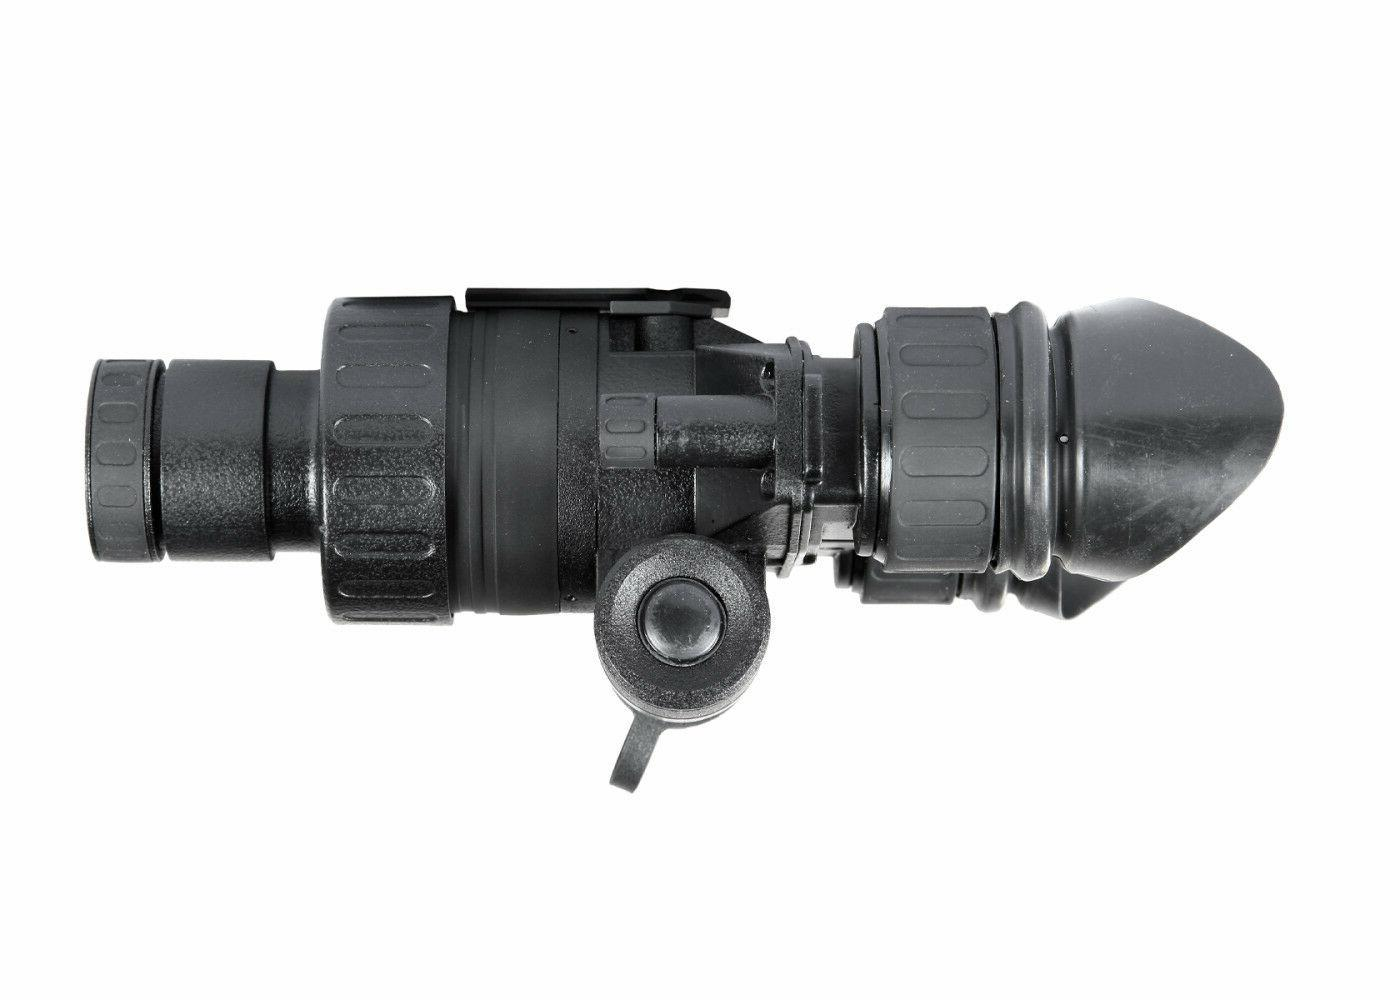 ARMASIGHT by FLIR GEN Definition Night Vision PVS7